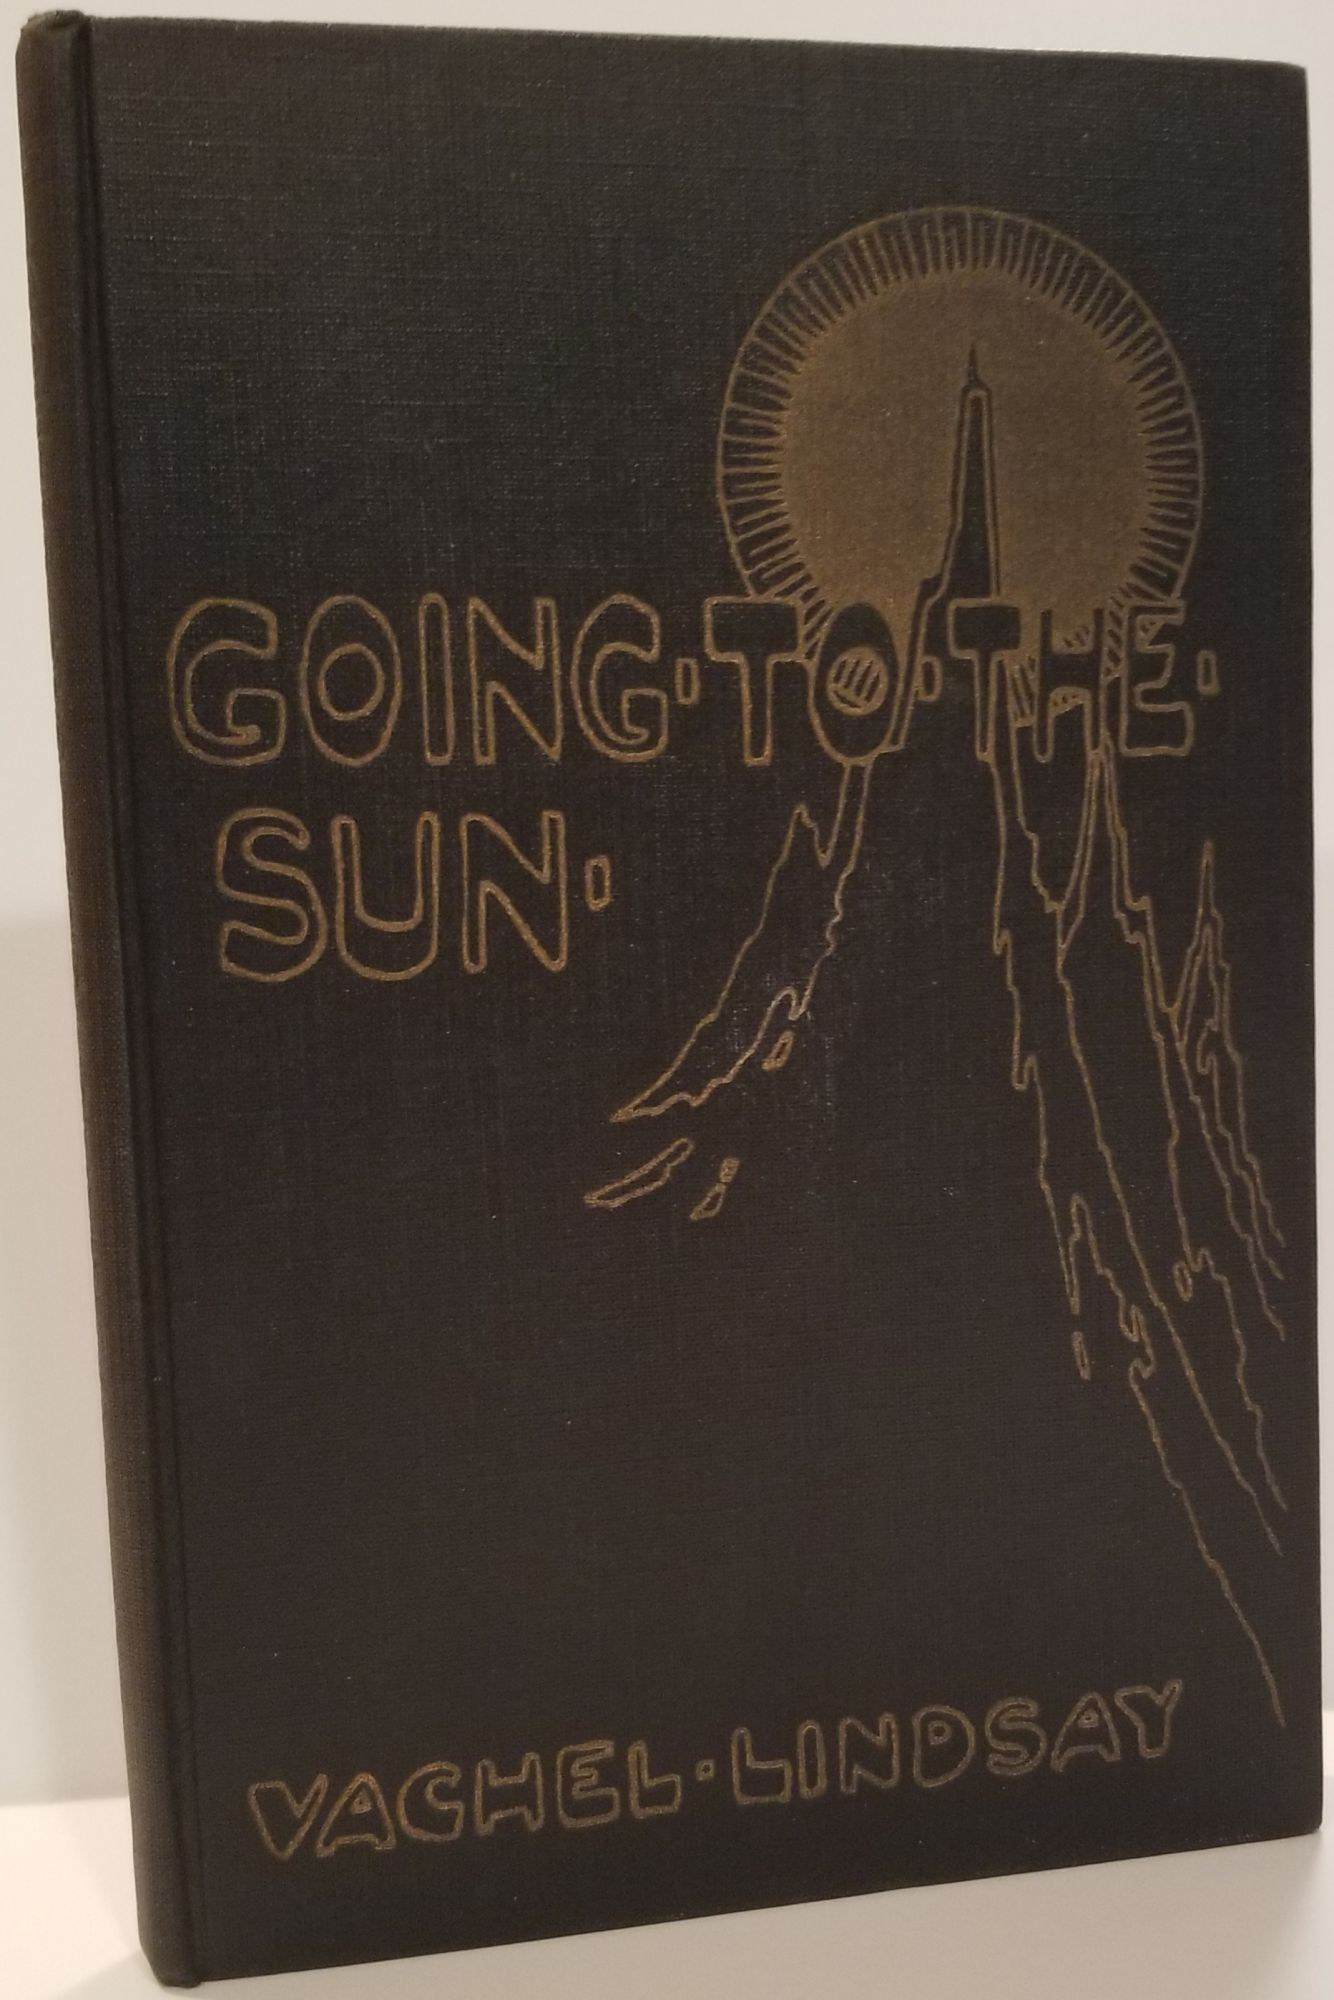 GOING-TO-THE-SUN. Vachel Lindsay.